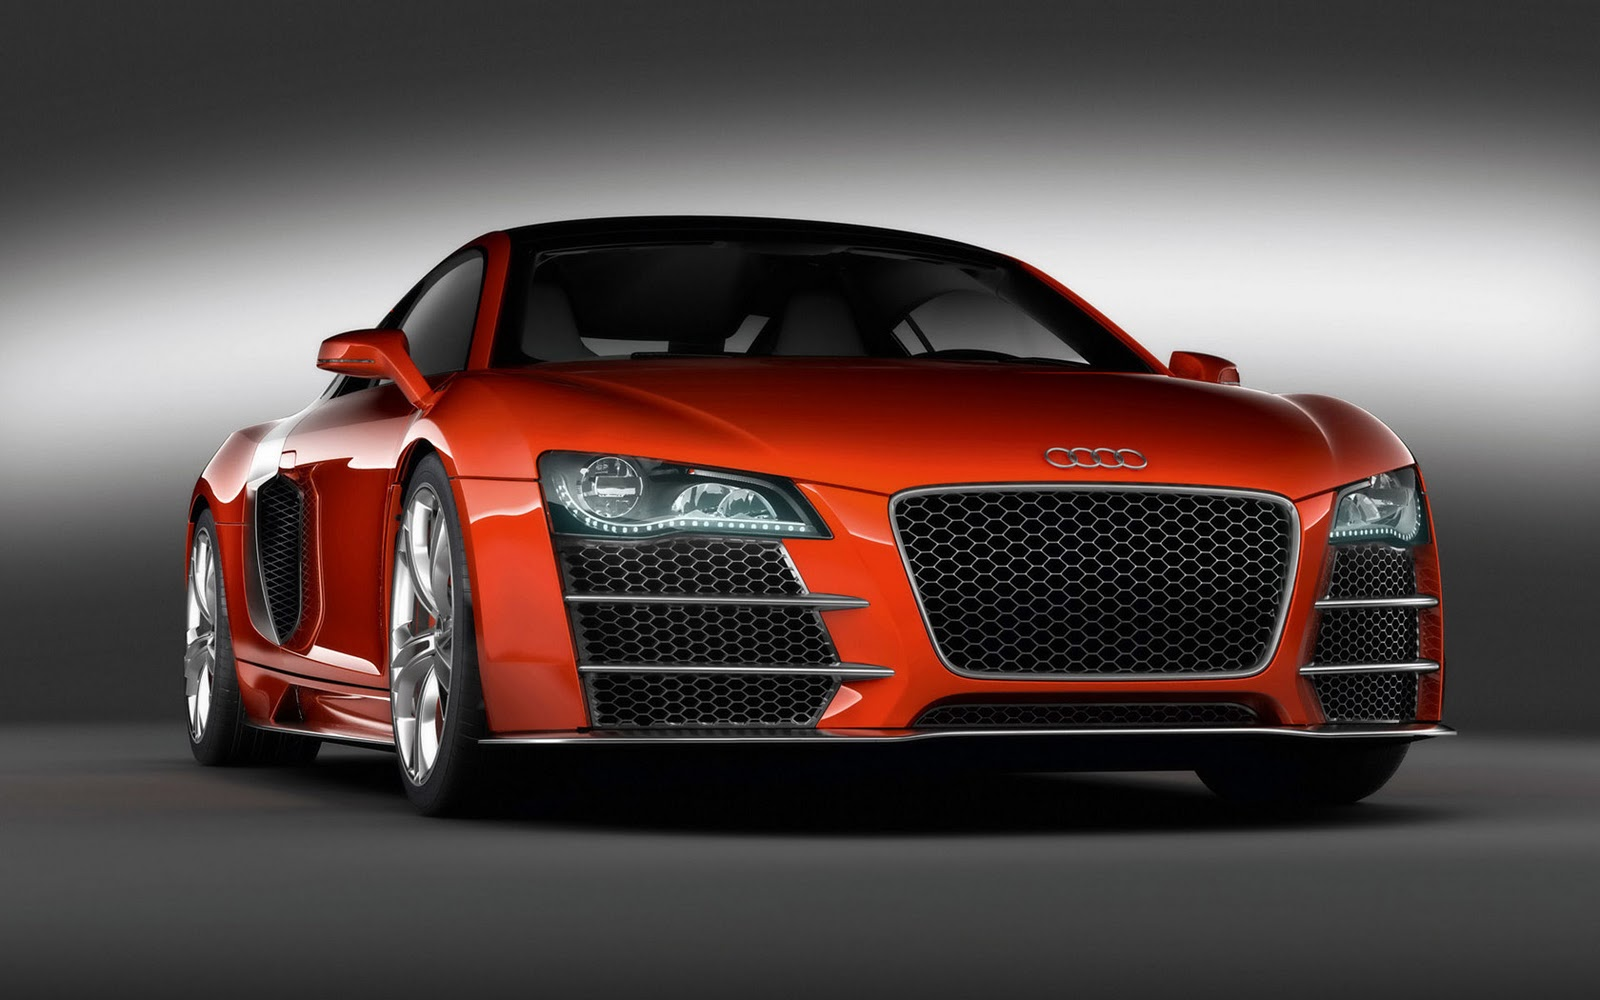 audi wallpapers hd audi wallpapers hd audi wallpapers hd 1600x1000